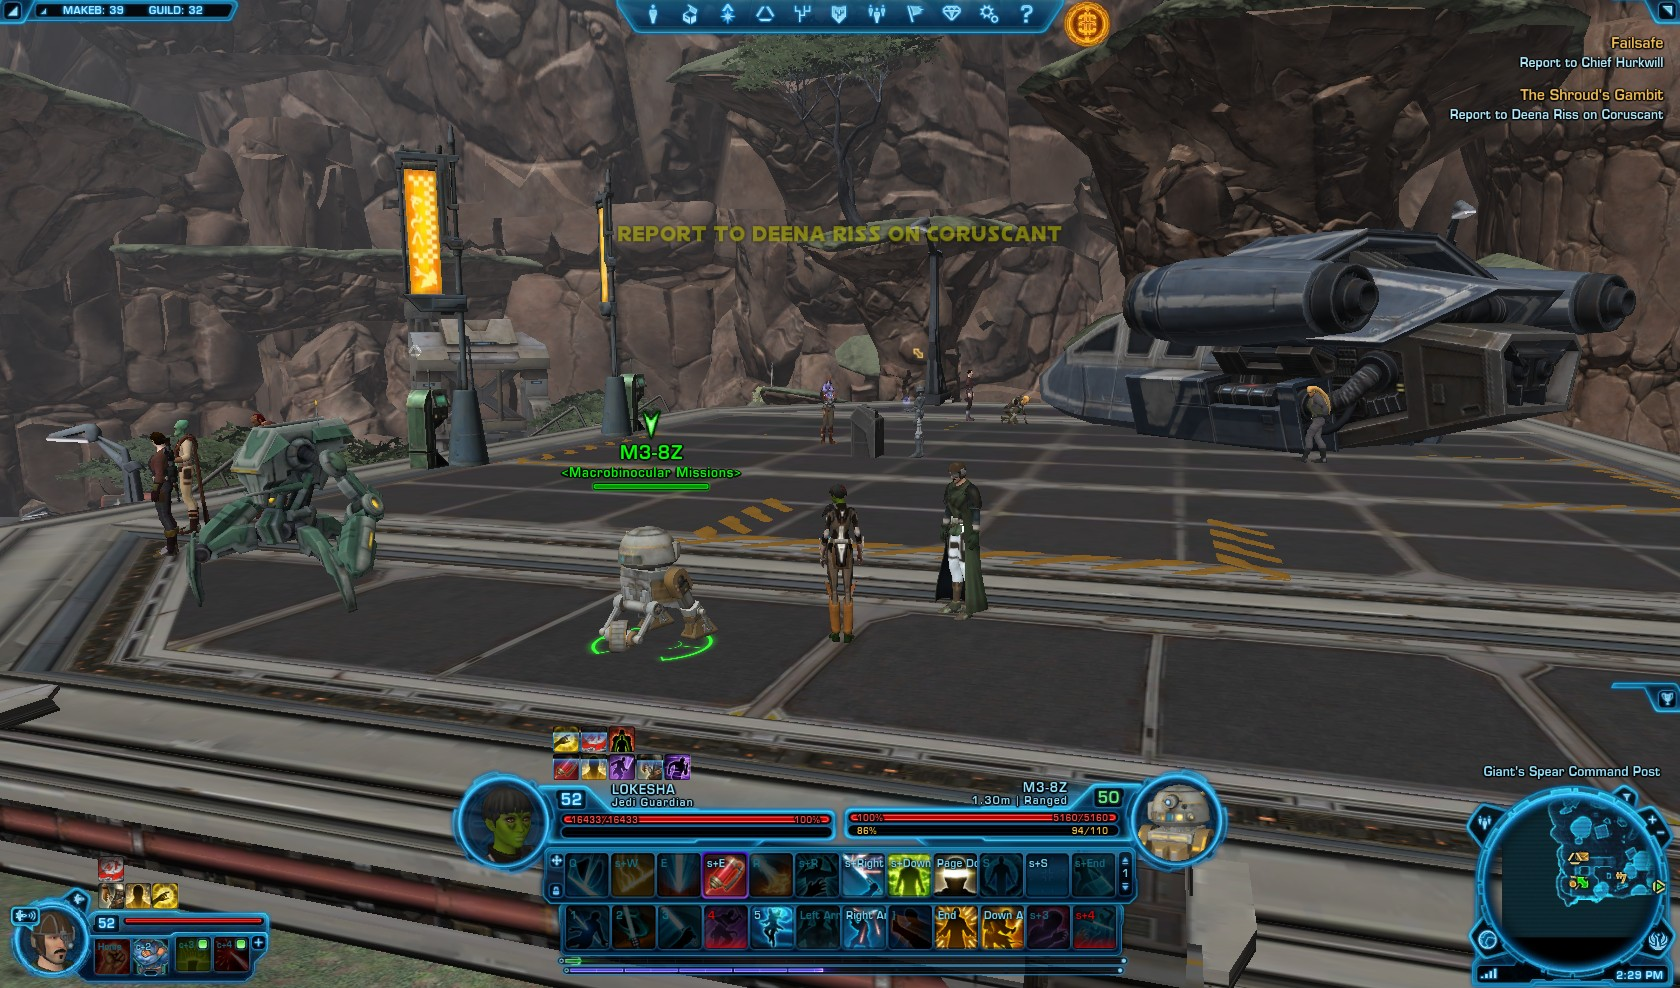 Swtor The Shroud's Gambit starting mission droid